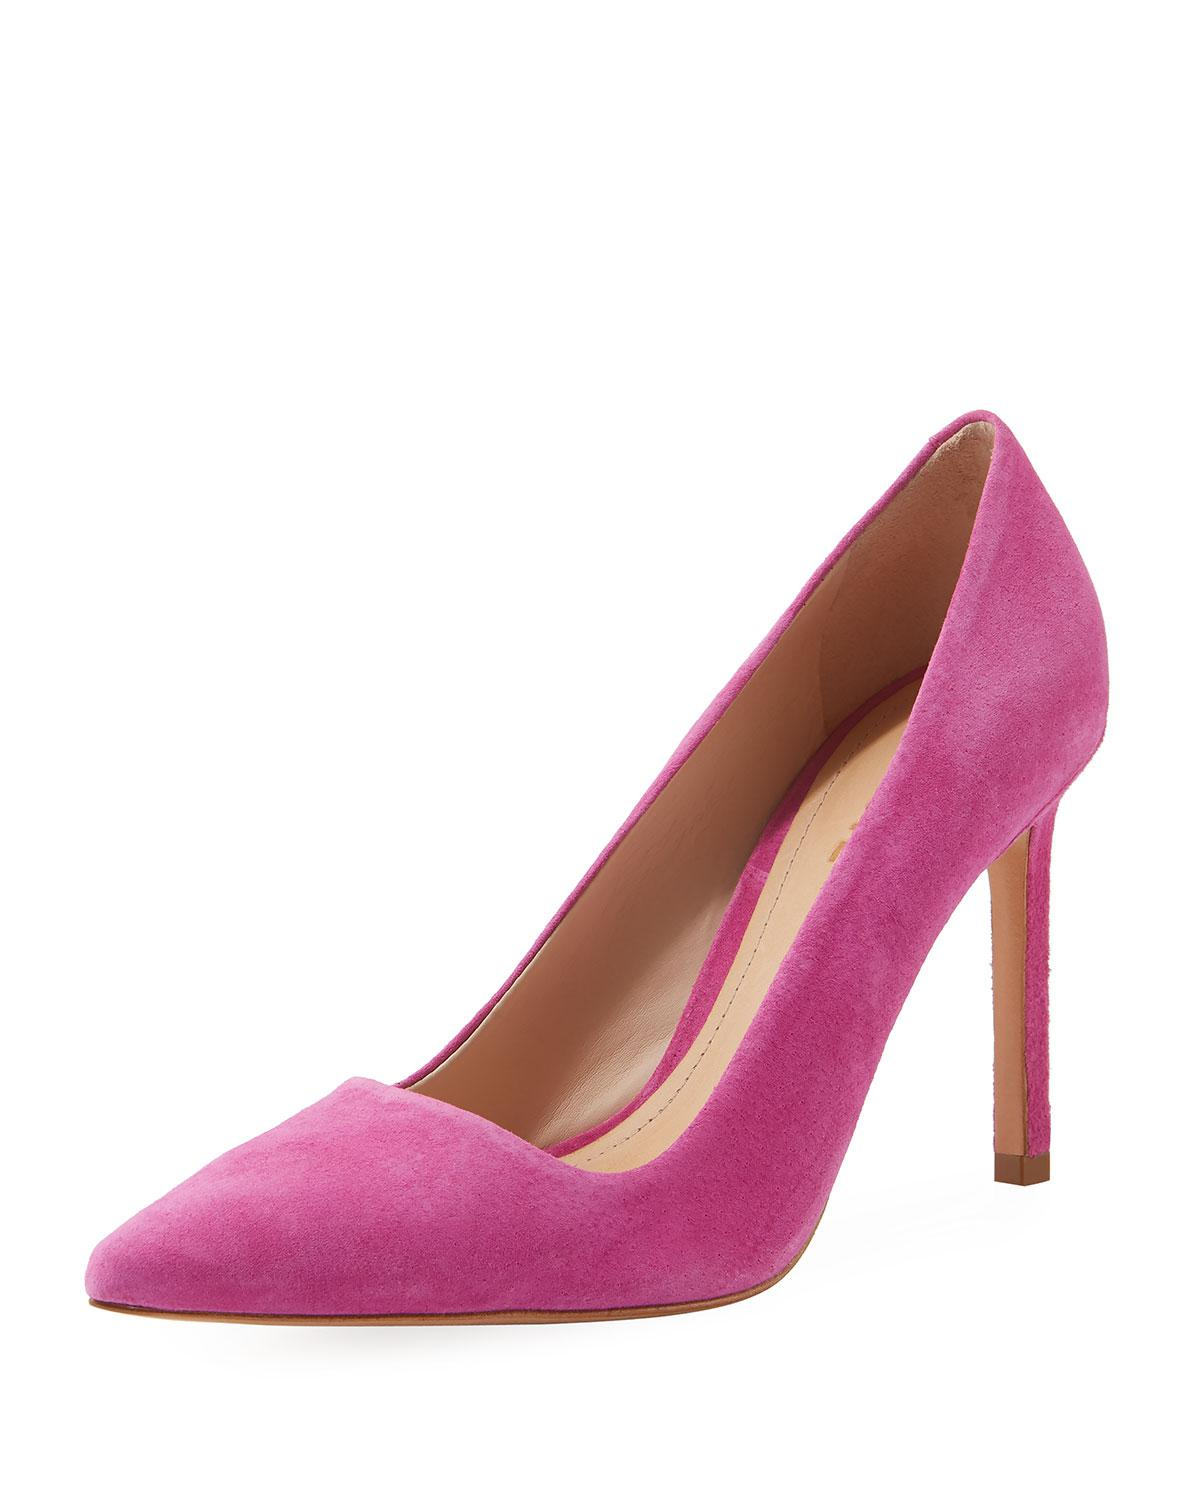 Schutz Pink Suede Leather Pumps Brand New Unisex Online Pay With Visa Online Sale Comfortable 2zLCR